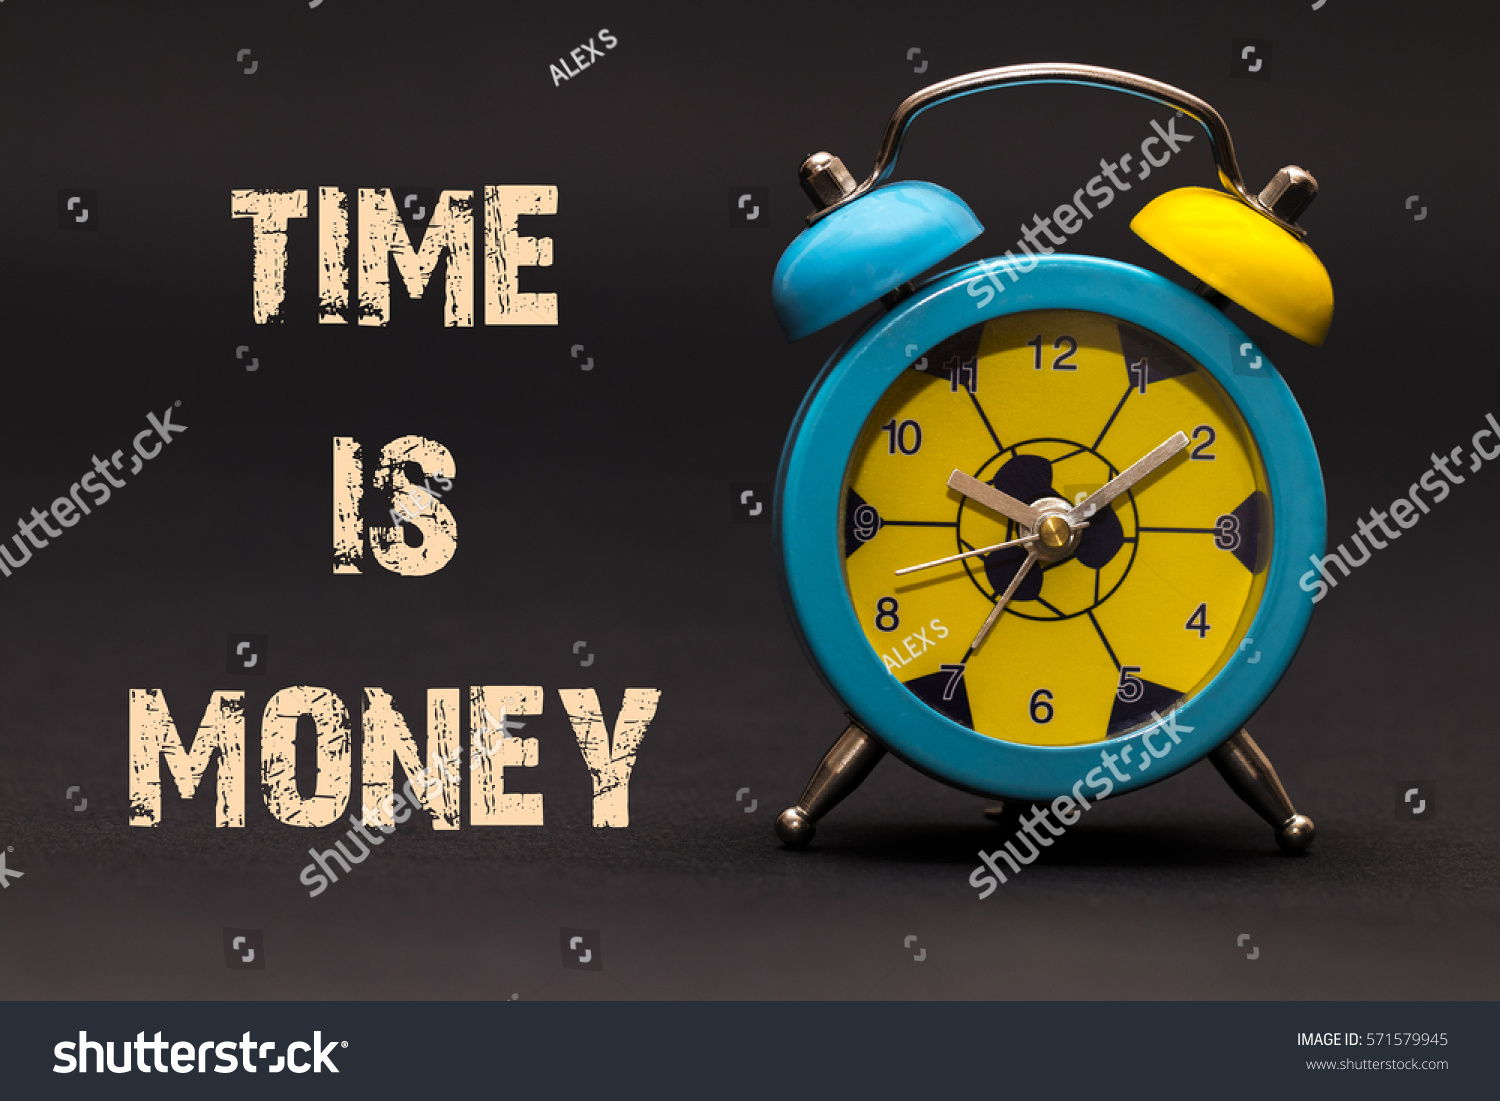 time is money 3 essay The only time love exceeds money is with family, that kind of love is built on trust with a special connection i laugh at people who are romantically together and claim that love is more important you need money to eat, buy a home, send your kids to school and have a retirement when you're frail and old.